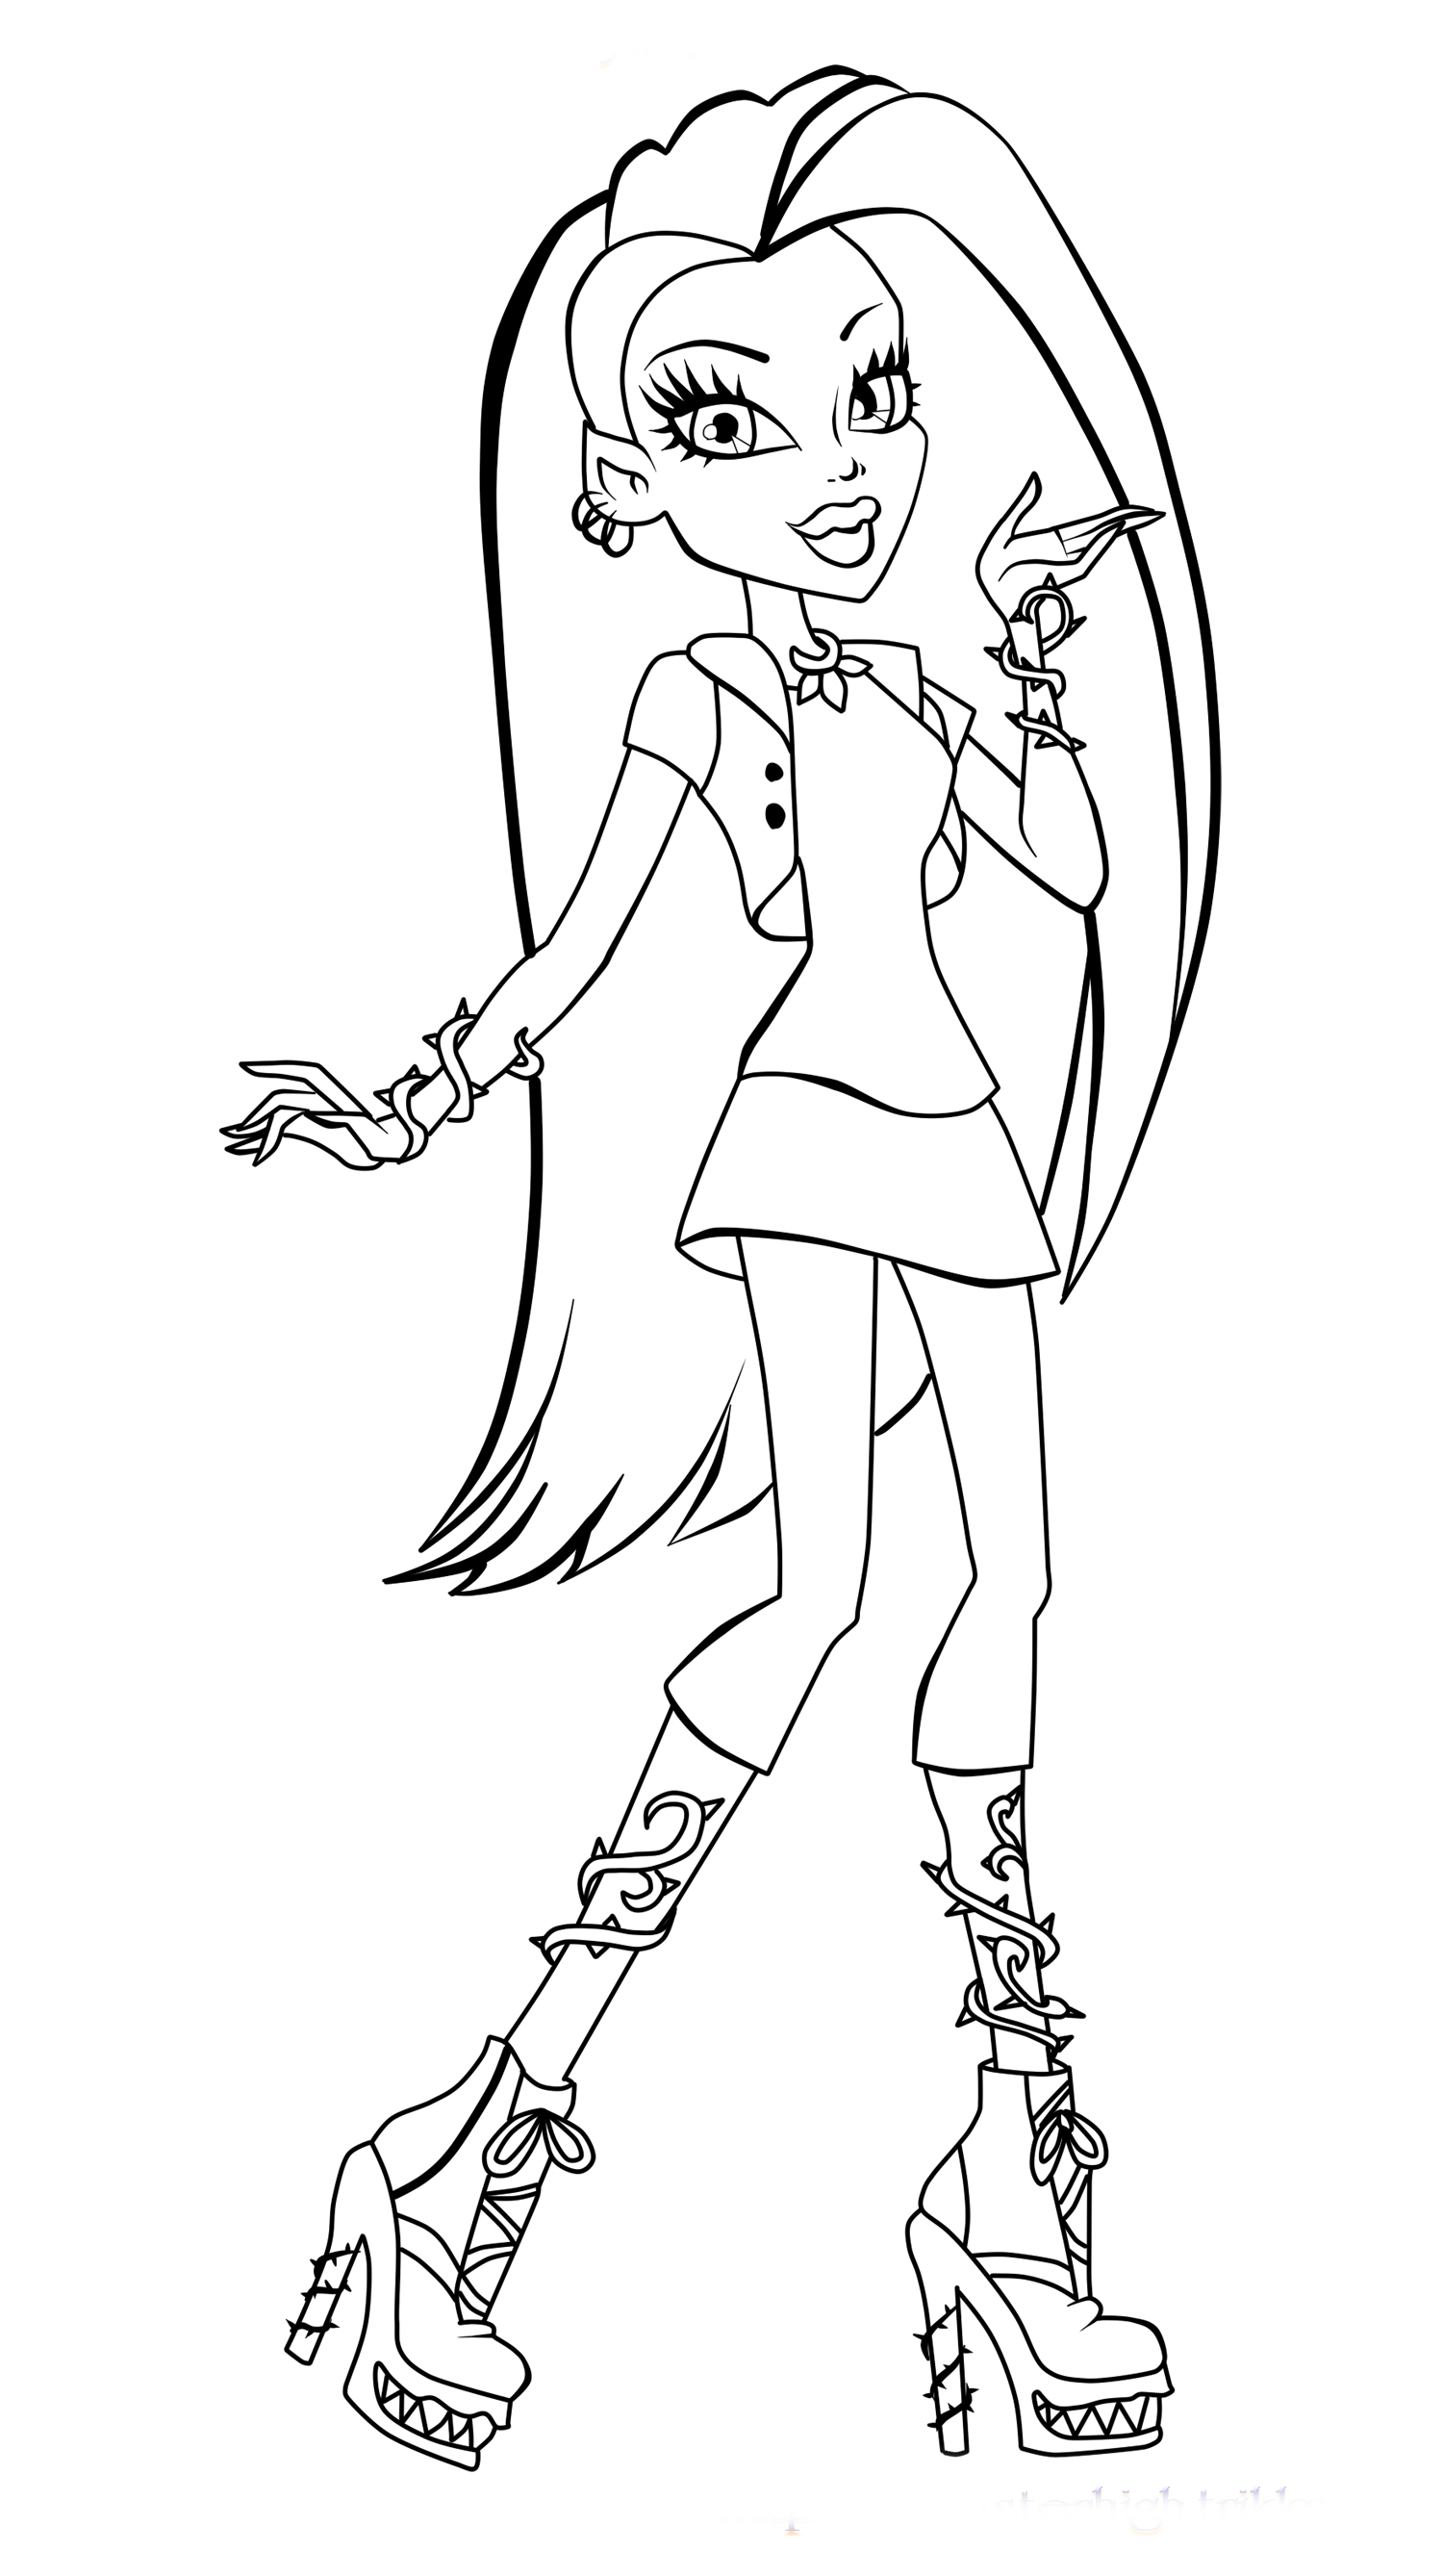 Monster high coloring pages 2018 z31 coloring page for Monster high printables coloring pages